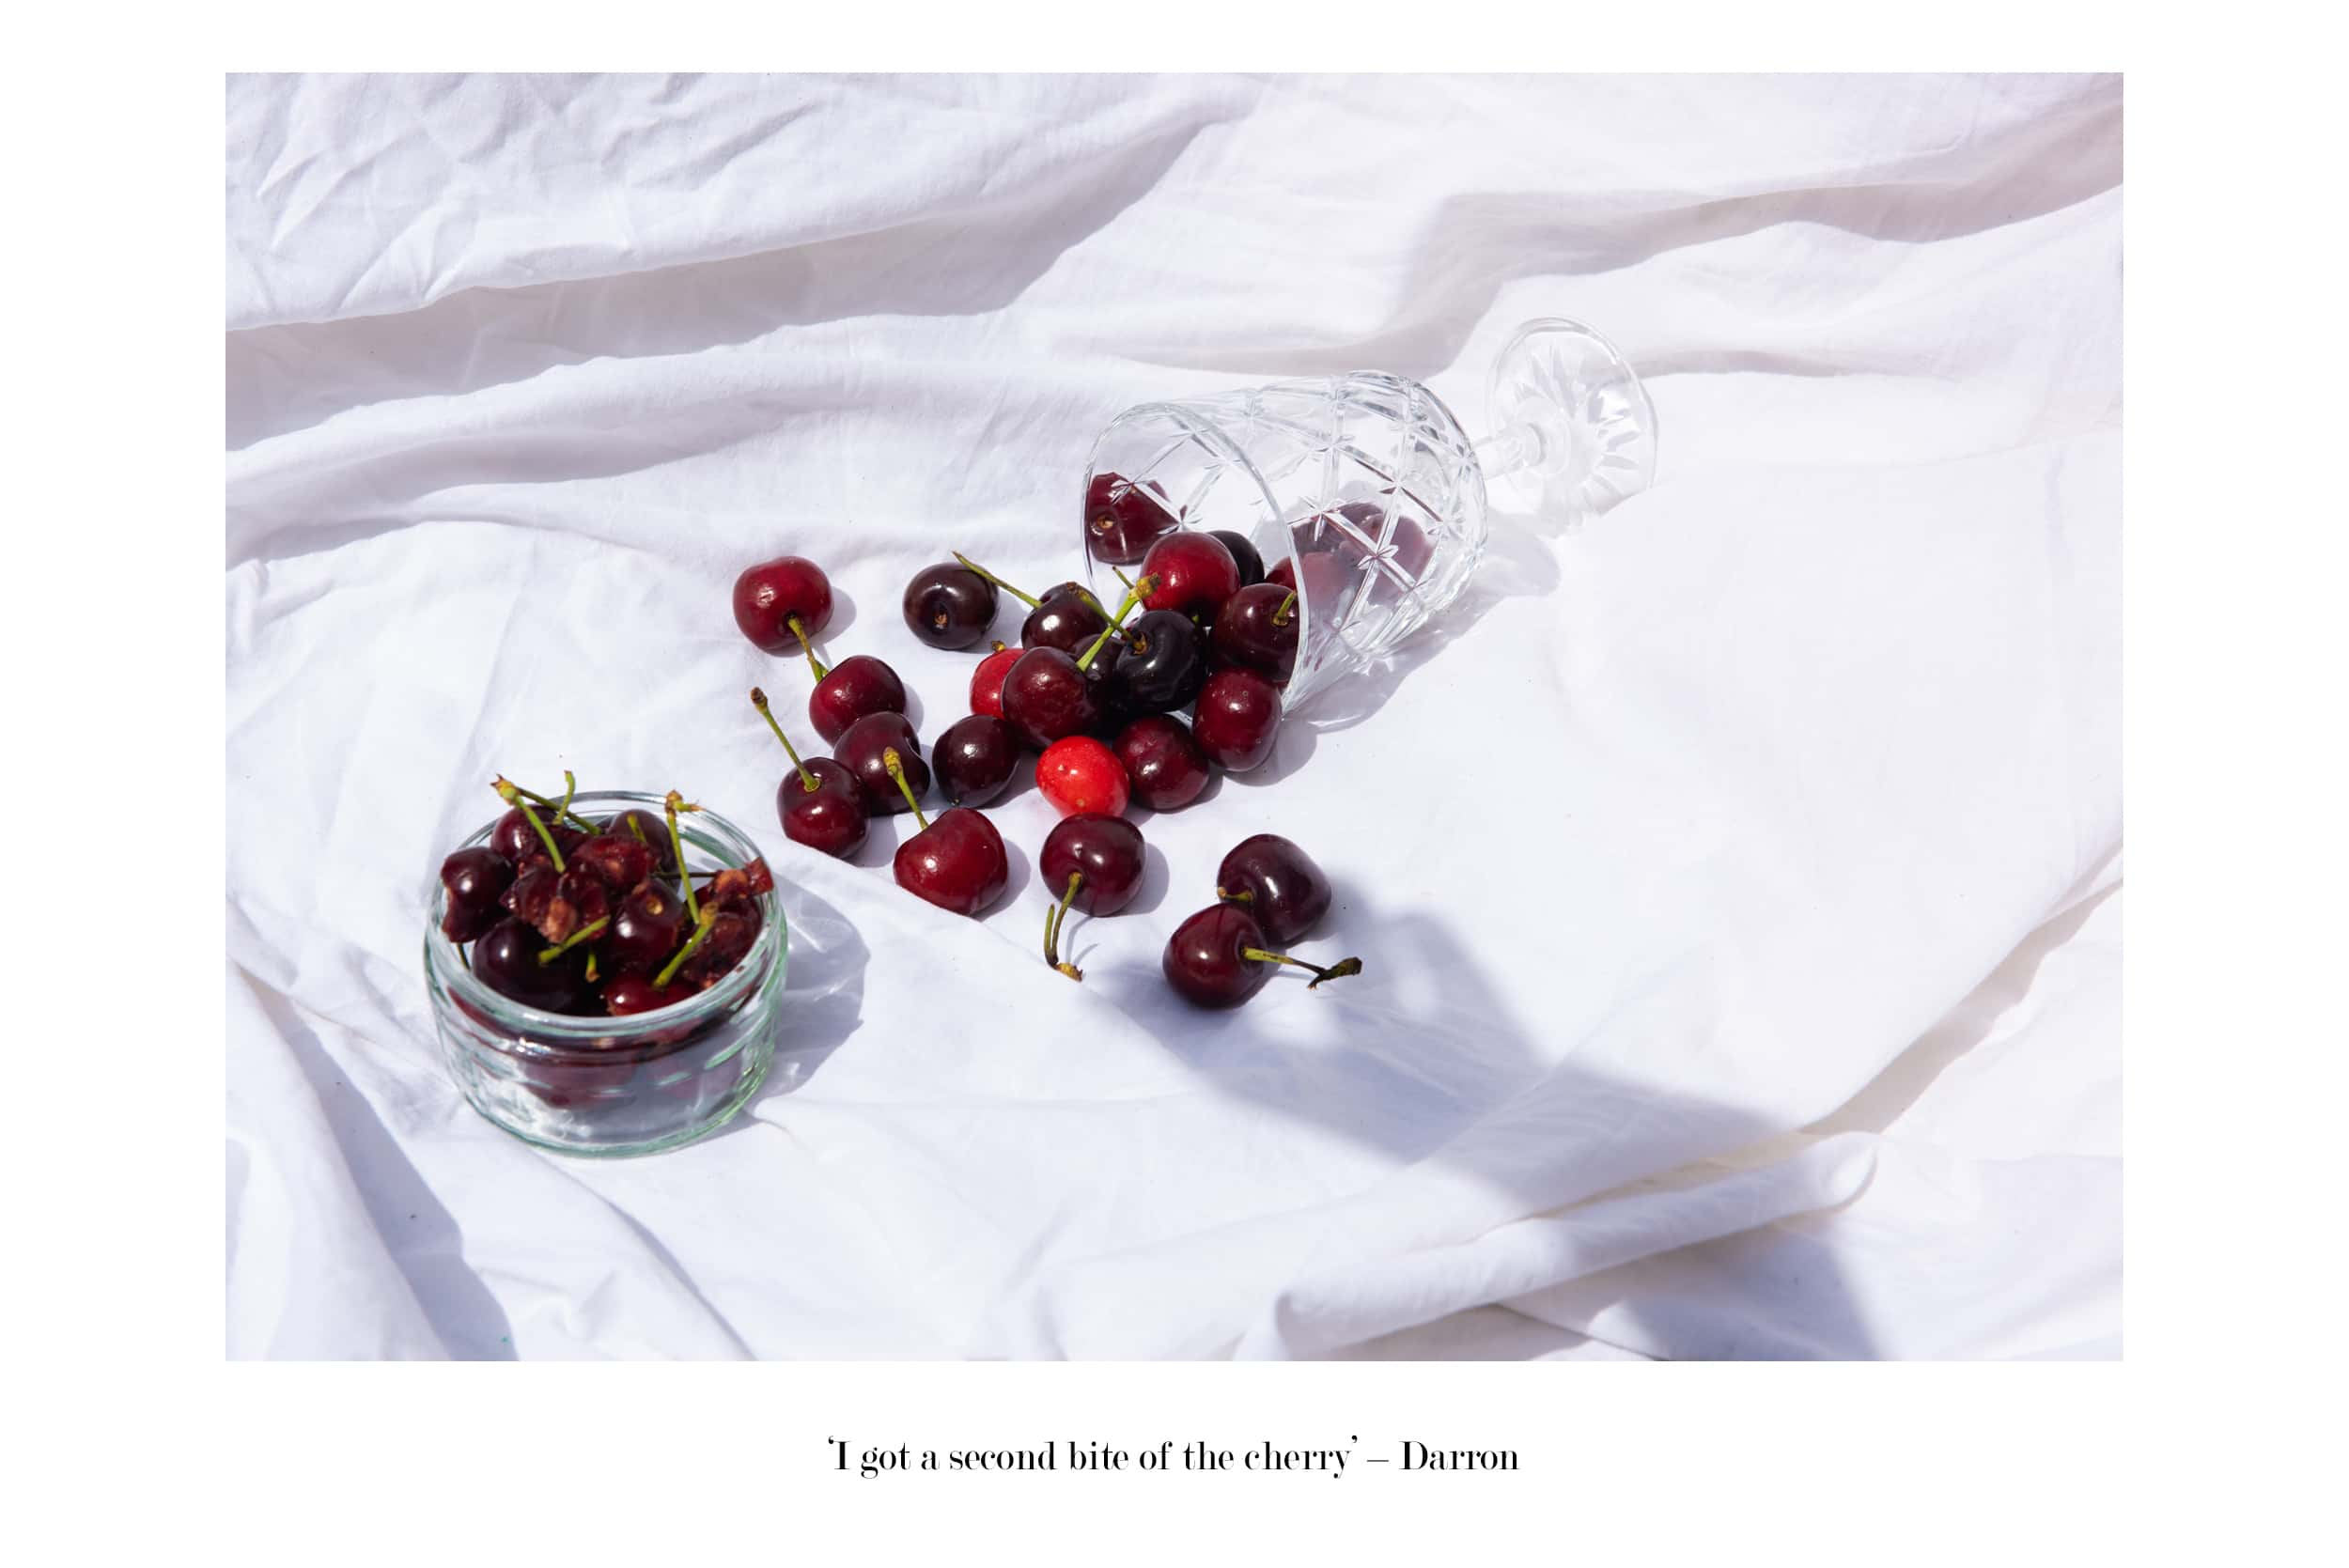 1Sophie_Somers_PVD_I_got_a_second_bite_of_the_cherry_ image1